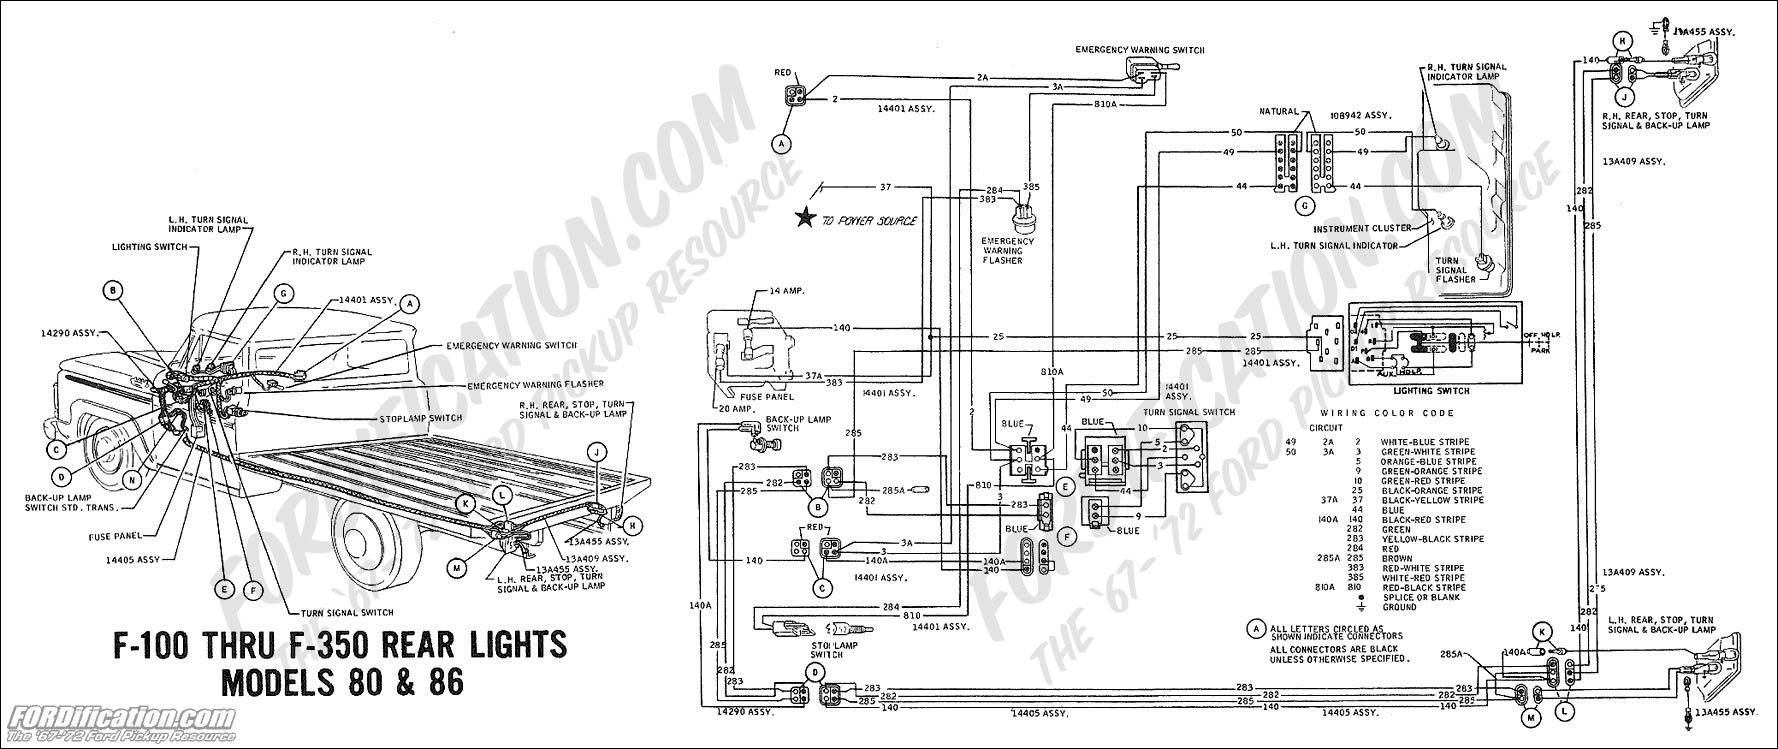 wiring_69rearlights mdls80 86 1994 f700 wiring diagram on 1994 download wirning diagrams 1979 Corvette Fuse Box Diagram at mifinder.co